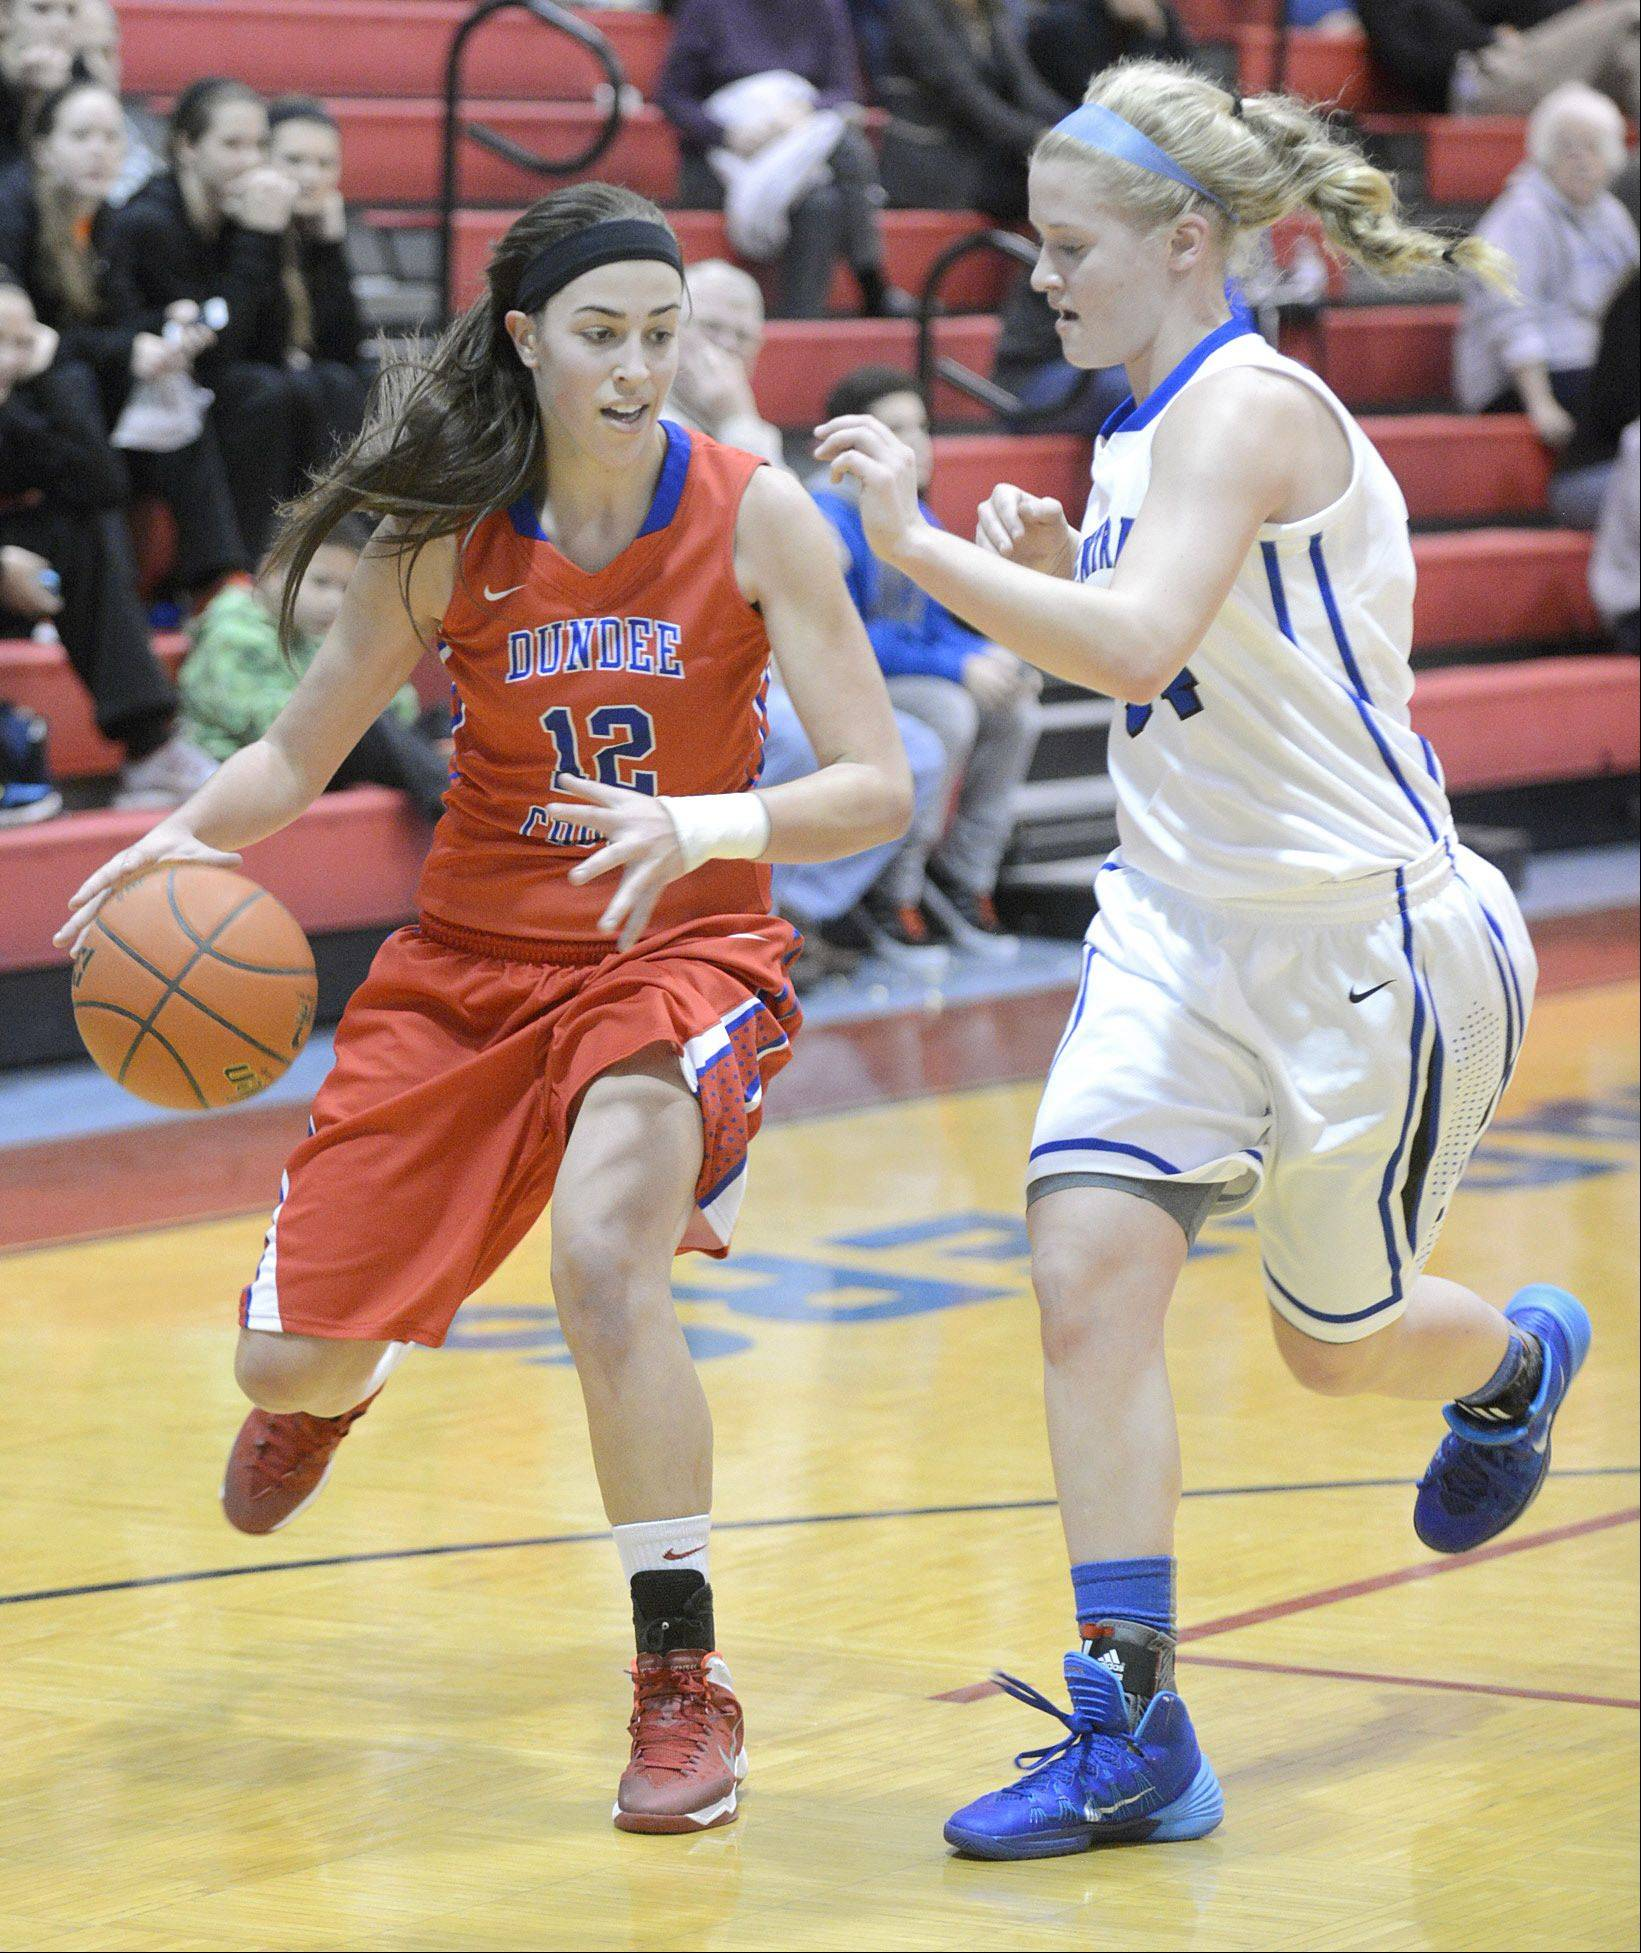 Dundee-Crown's Lauren Lococo (12) looks to find a way around Burlington Central's Sam Pryor during the Charger Classic at D-C.